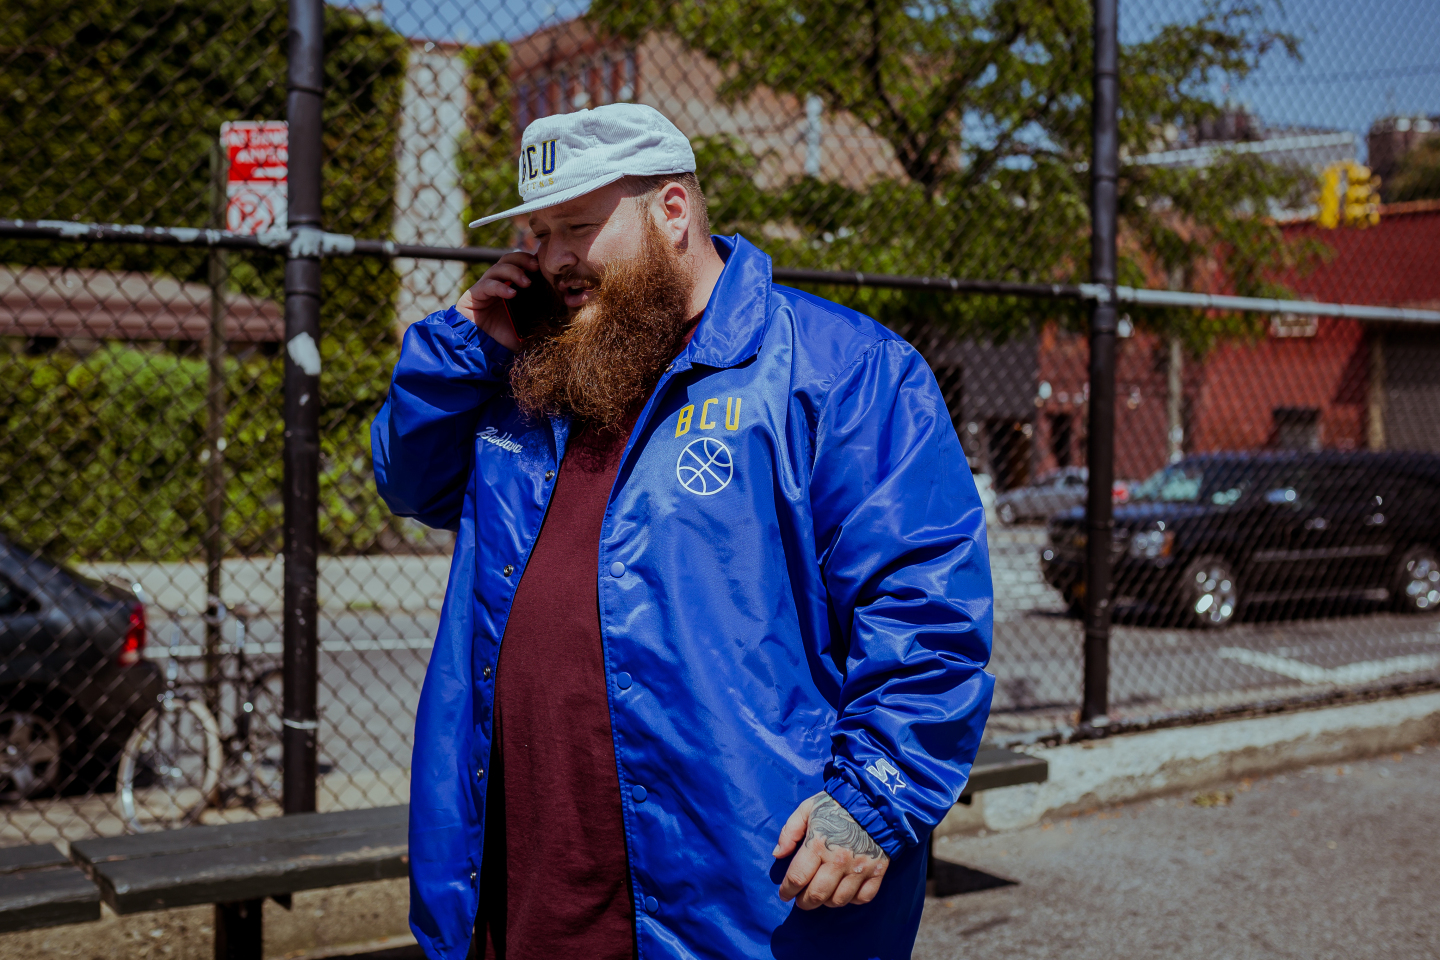 Action Bronson Packer Shoes Starter BCU collection 12